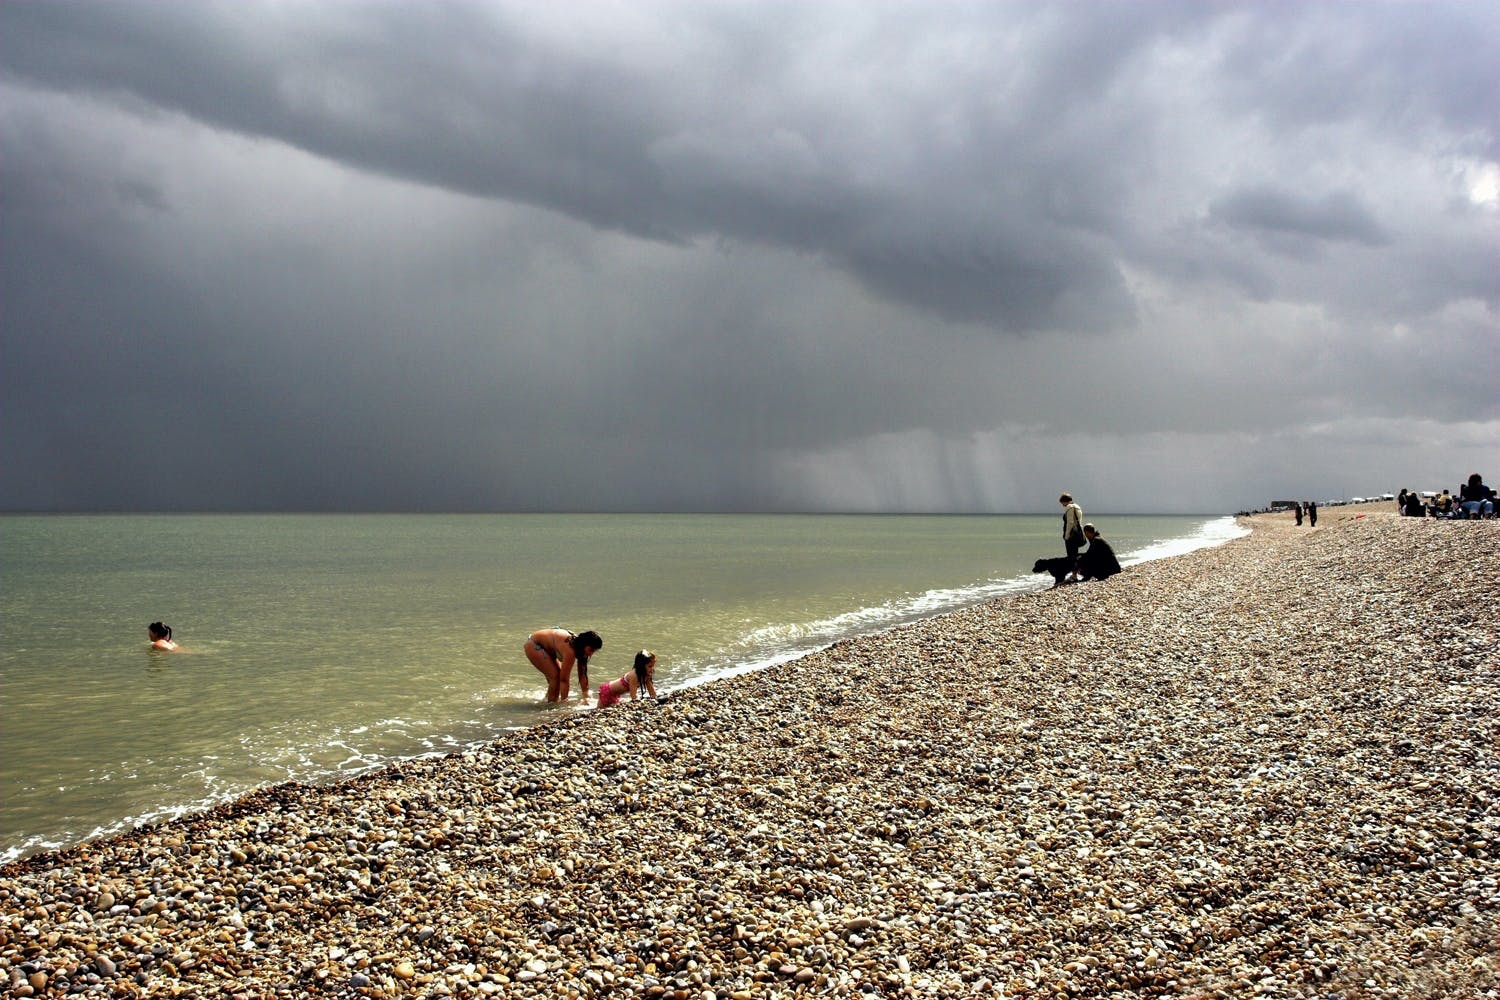 Stormy weather at beach